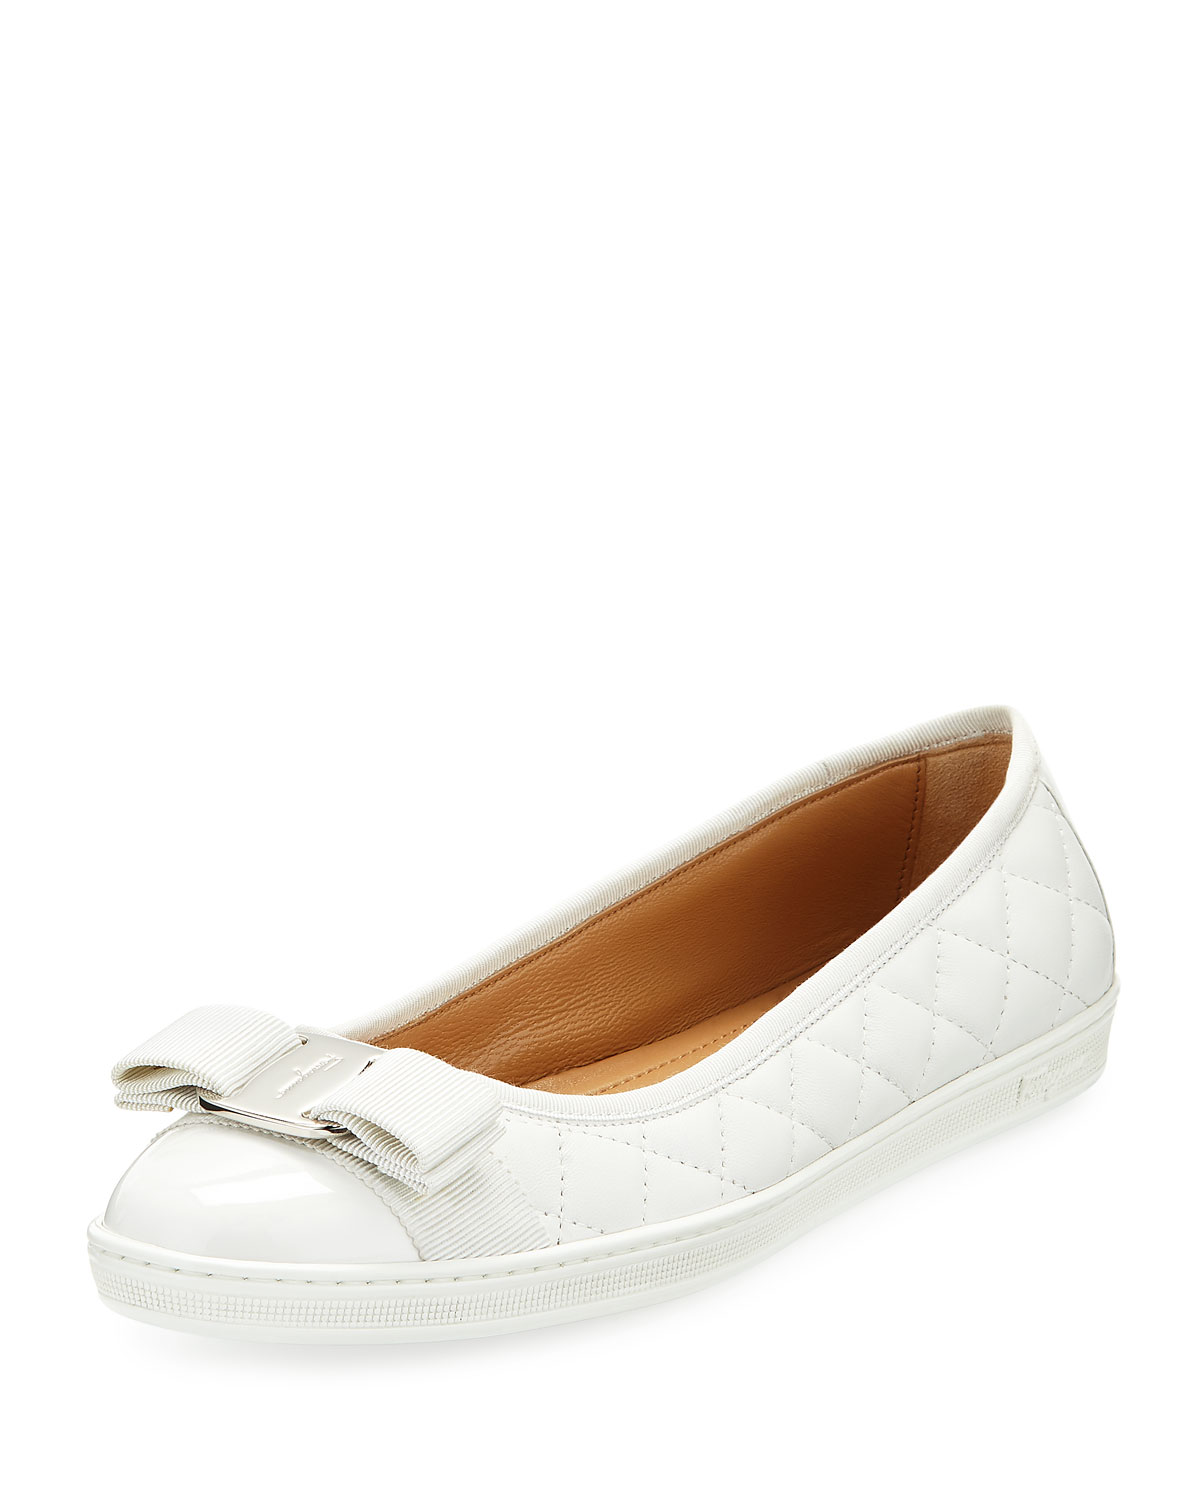 Salvatore Ferragamo Rufina Quilted Leather Bow Sneaker   $460.00